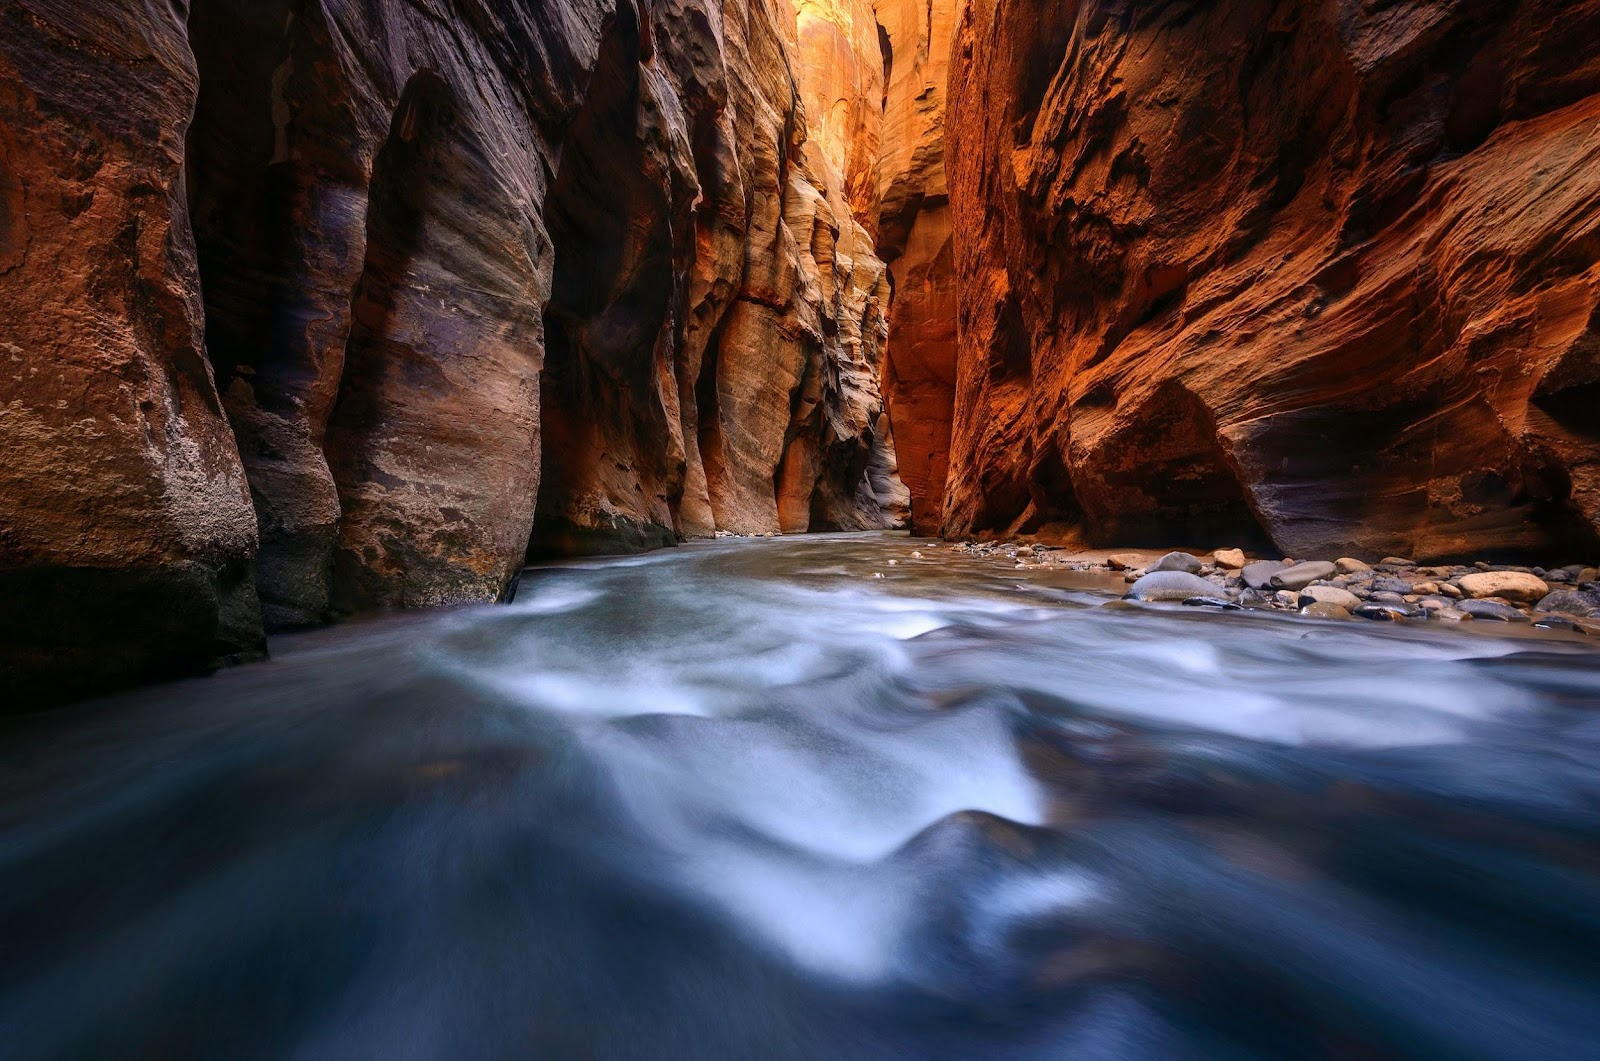 Flowing water inside The Narrows at Zion National Park.